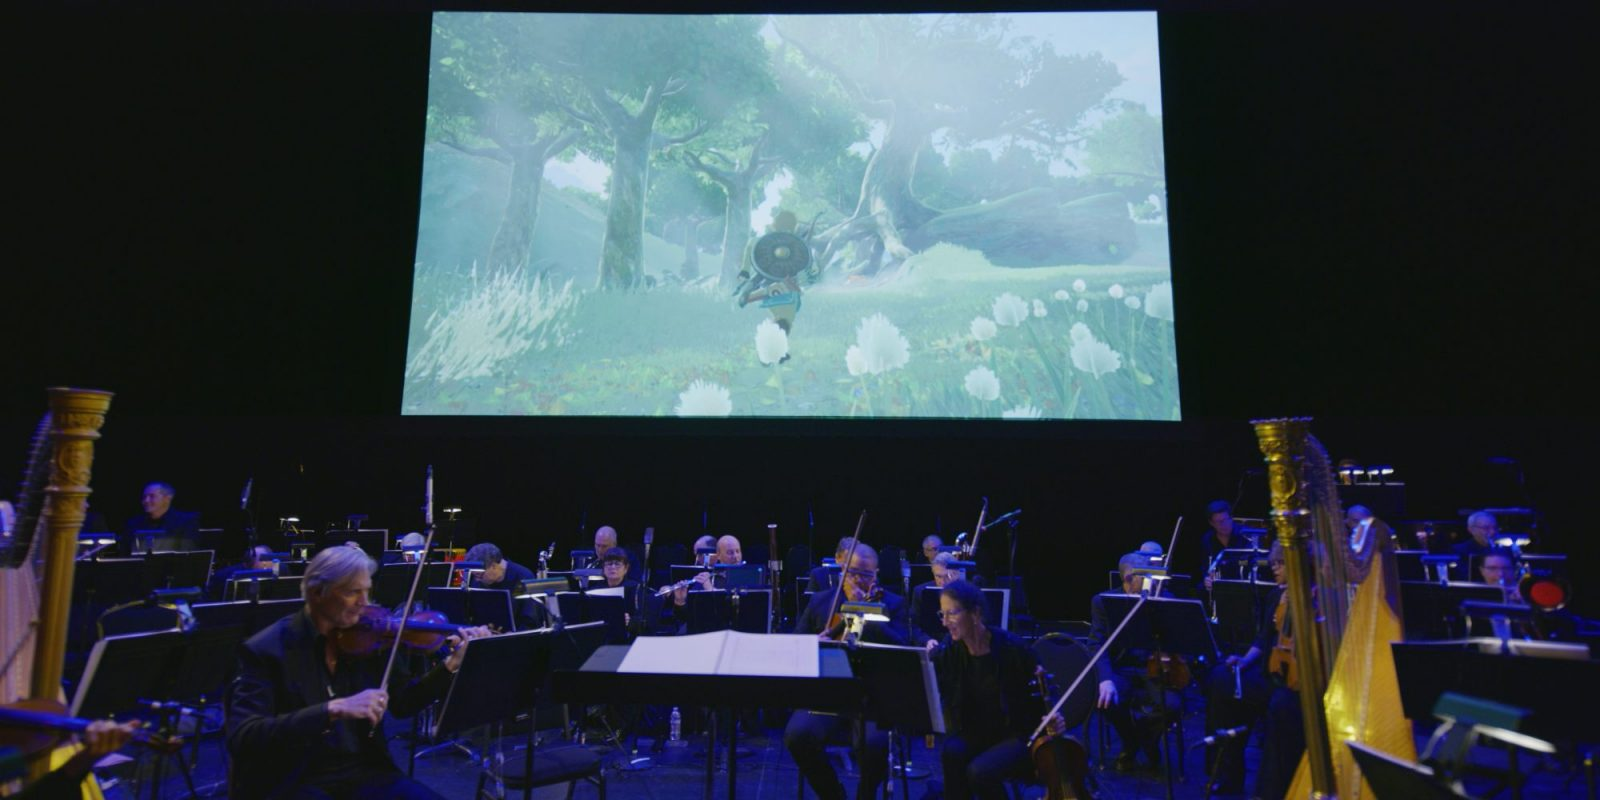 Zelda orchestra with screen